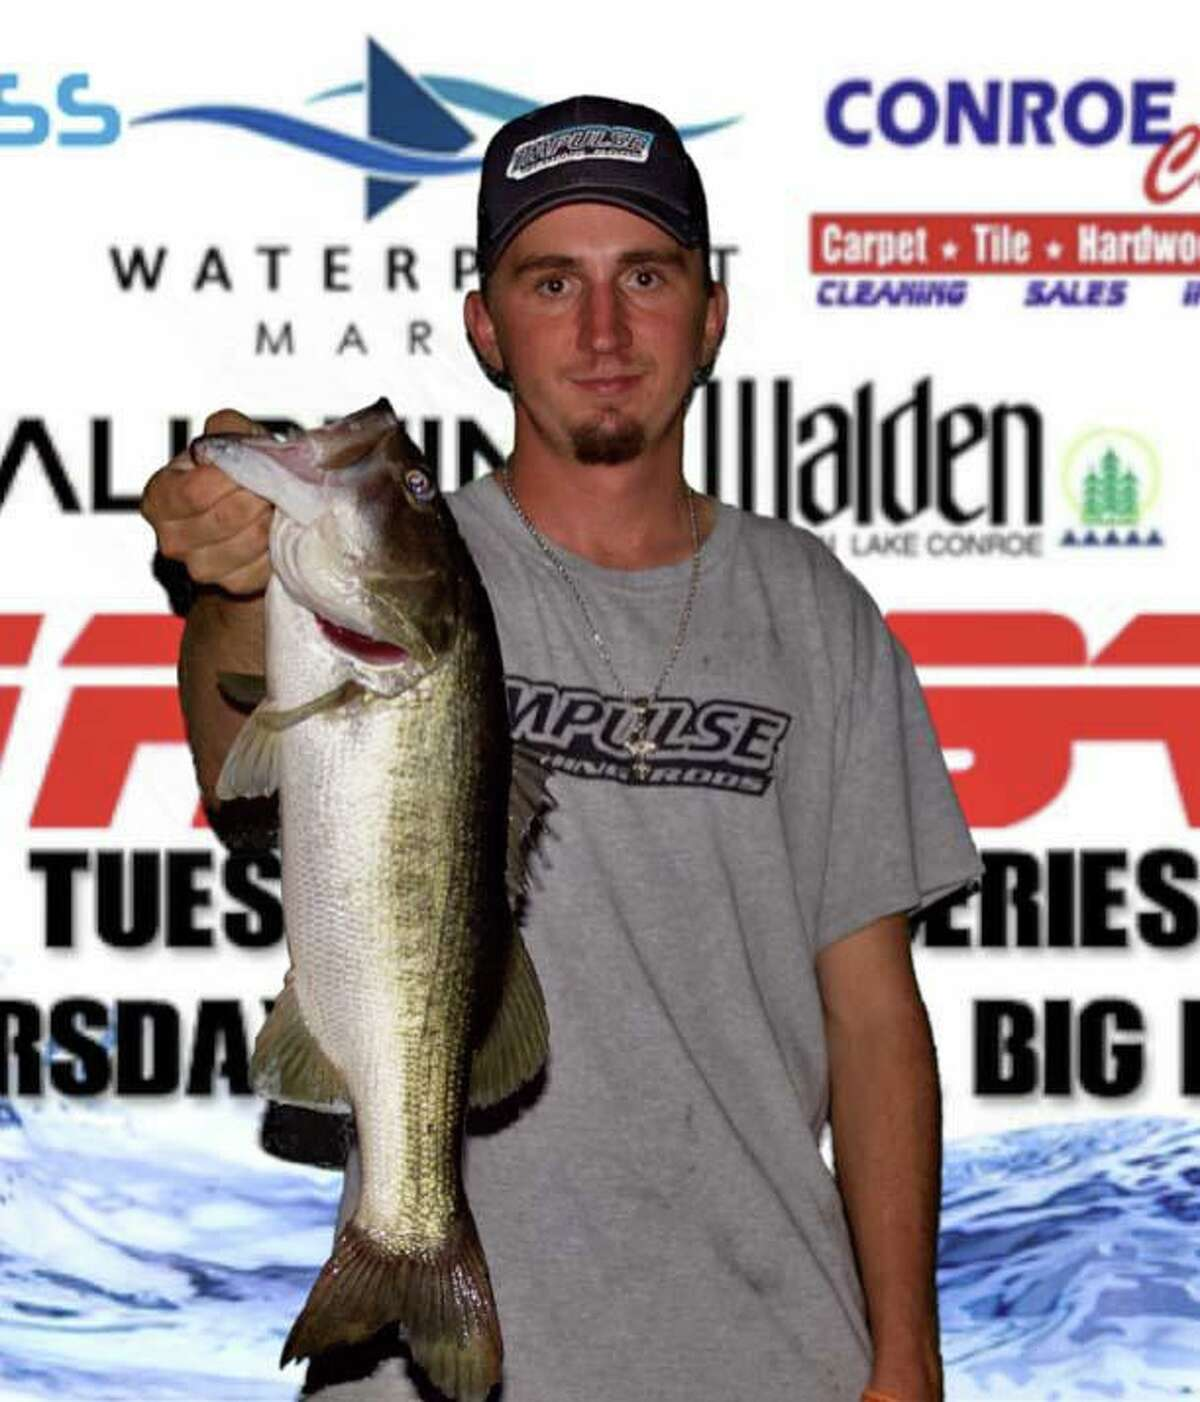 Mason McQuerry came in second in the CONROEBASS Thursday Big Bass Tournament with a bass weighing 4.52 pounds.